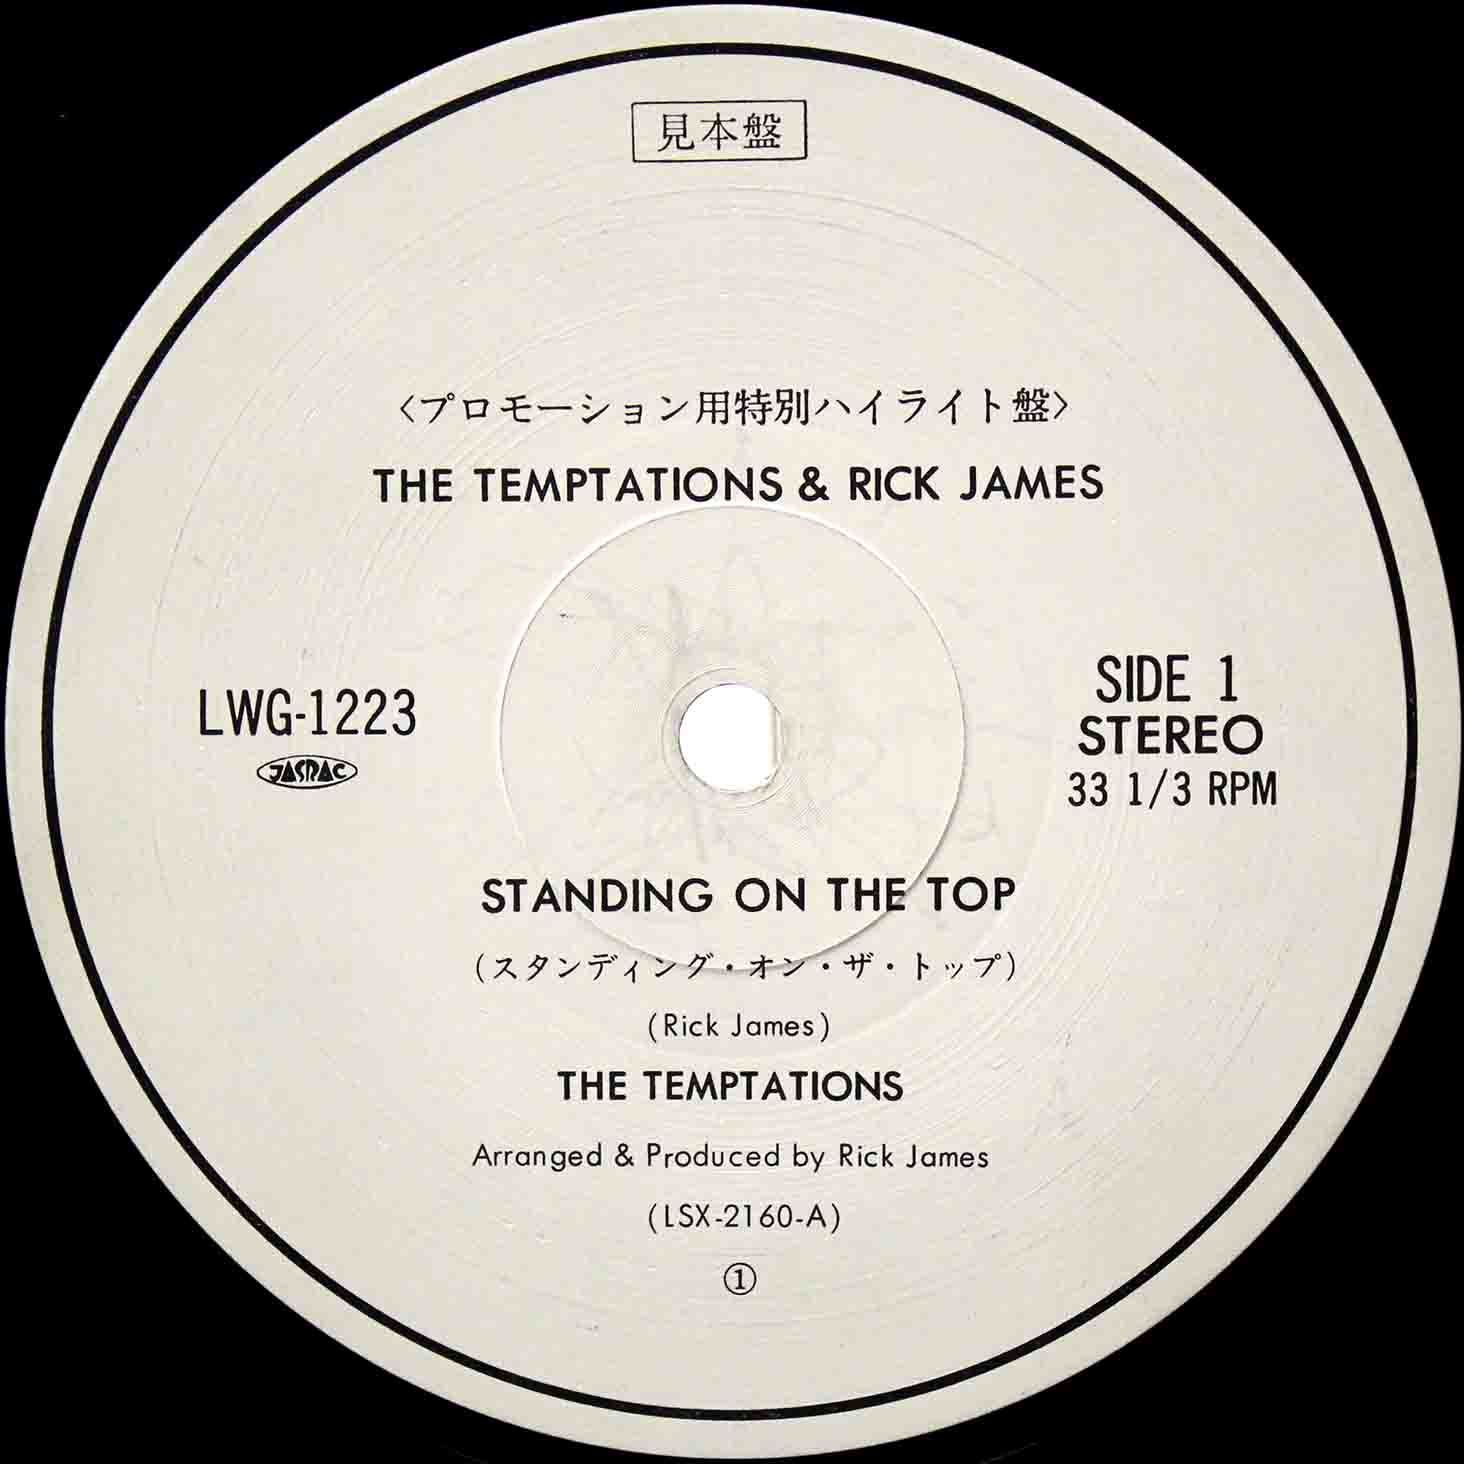 The Temptations - Standing On the Top Japan 12 02